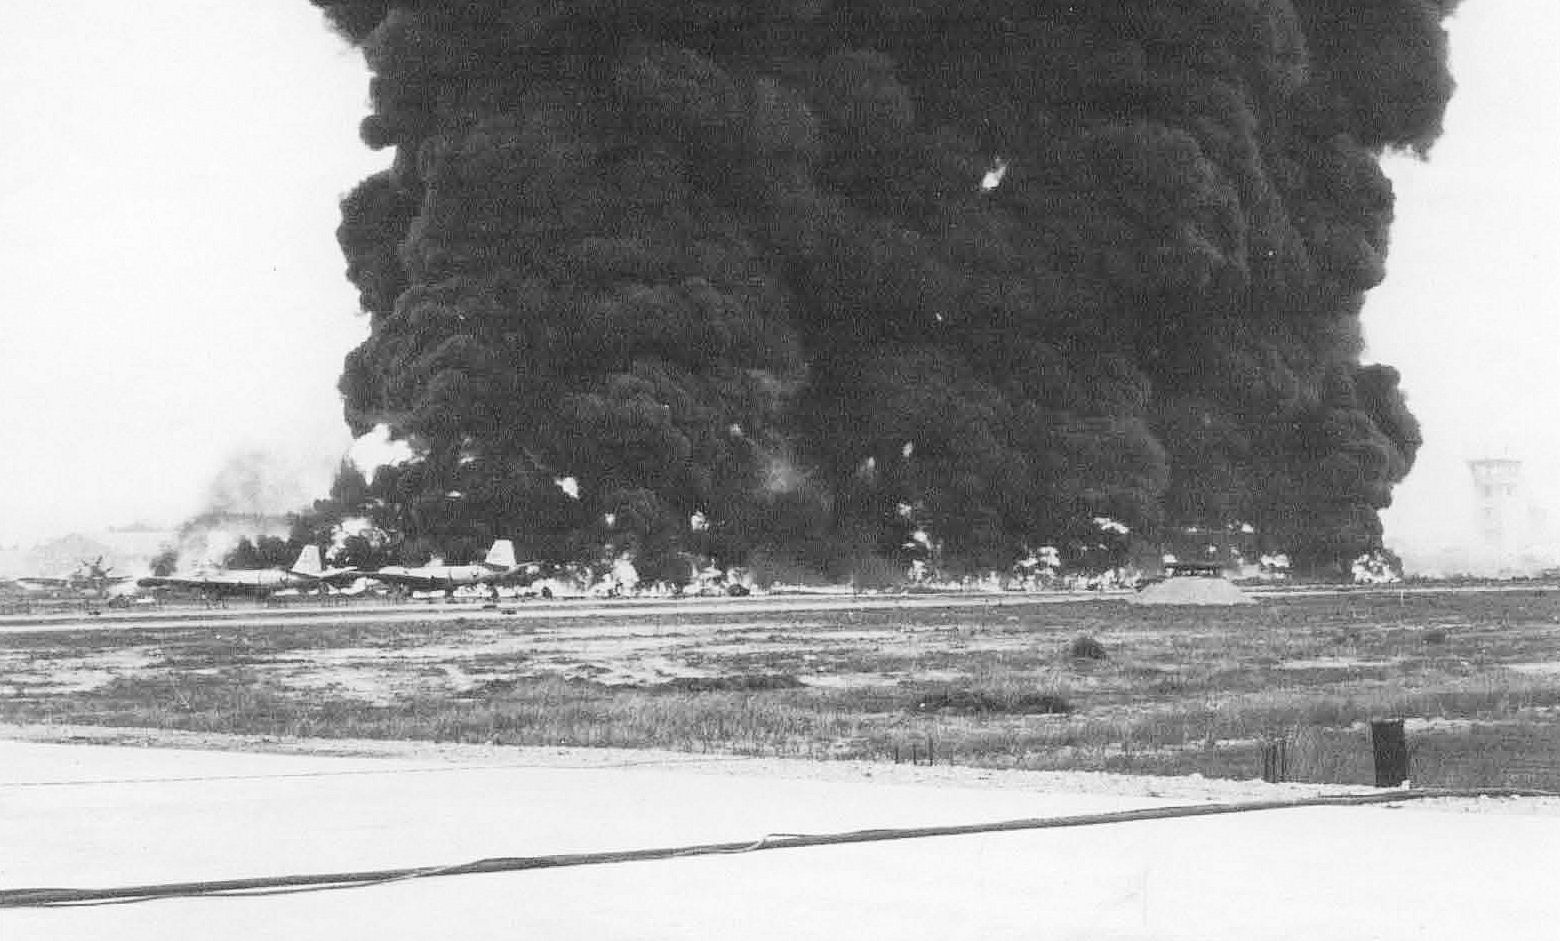 Burning_Aircraft_on_ramp_at_Bien_Hoa_AB_-1